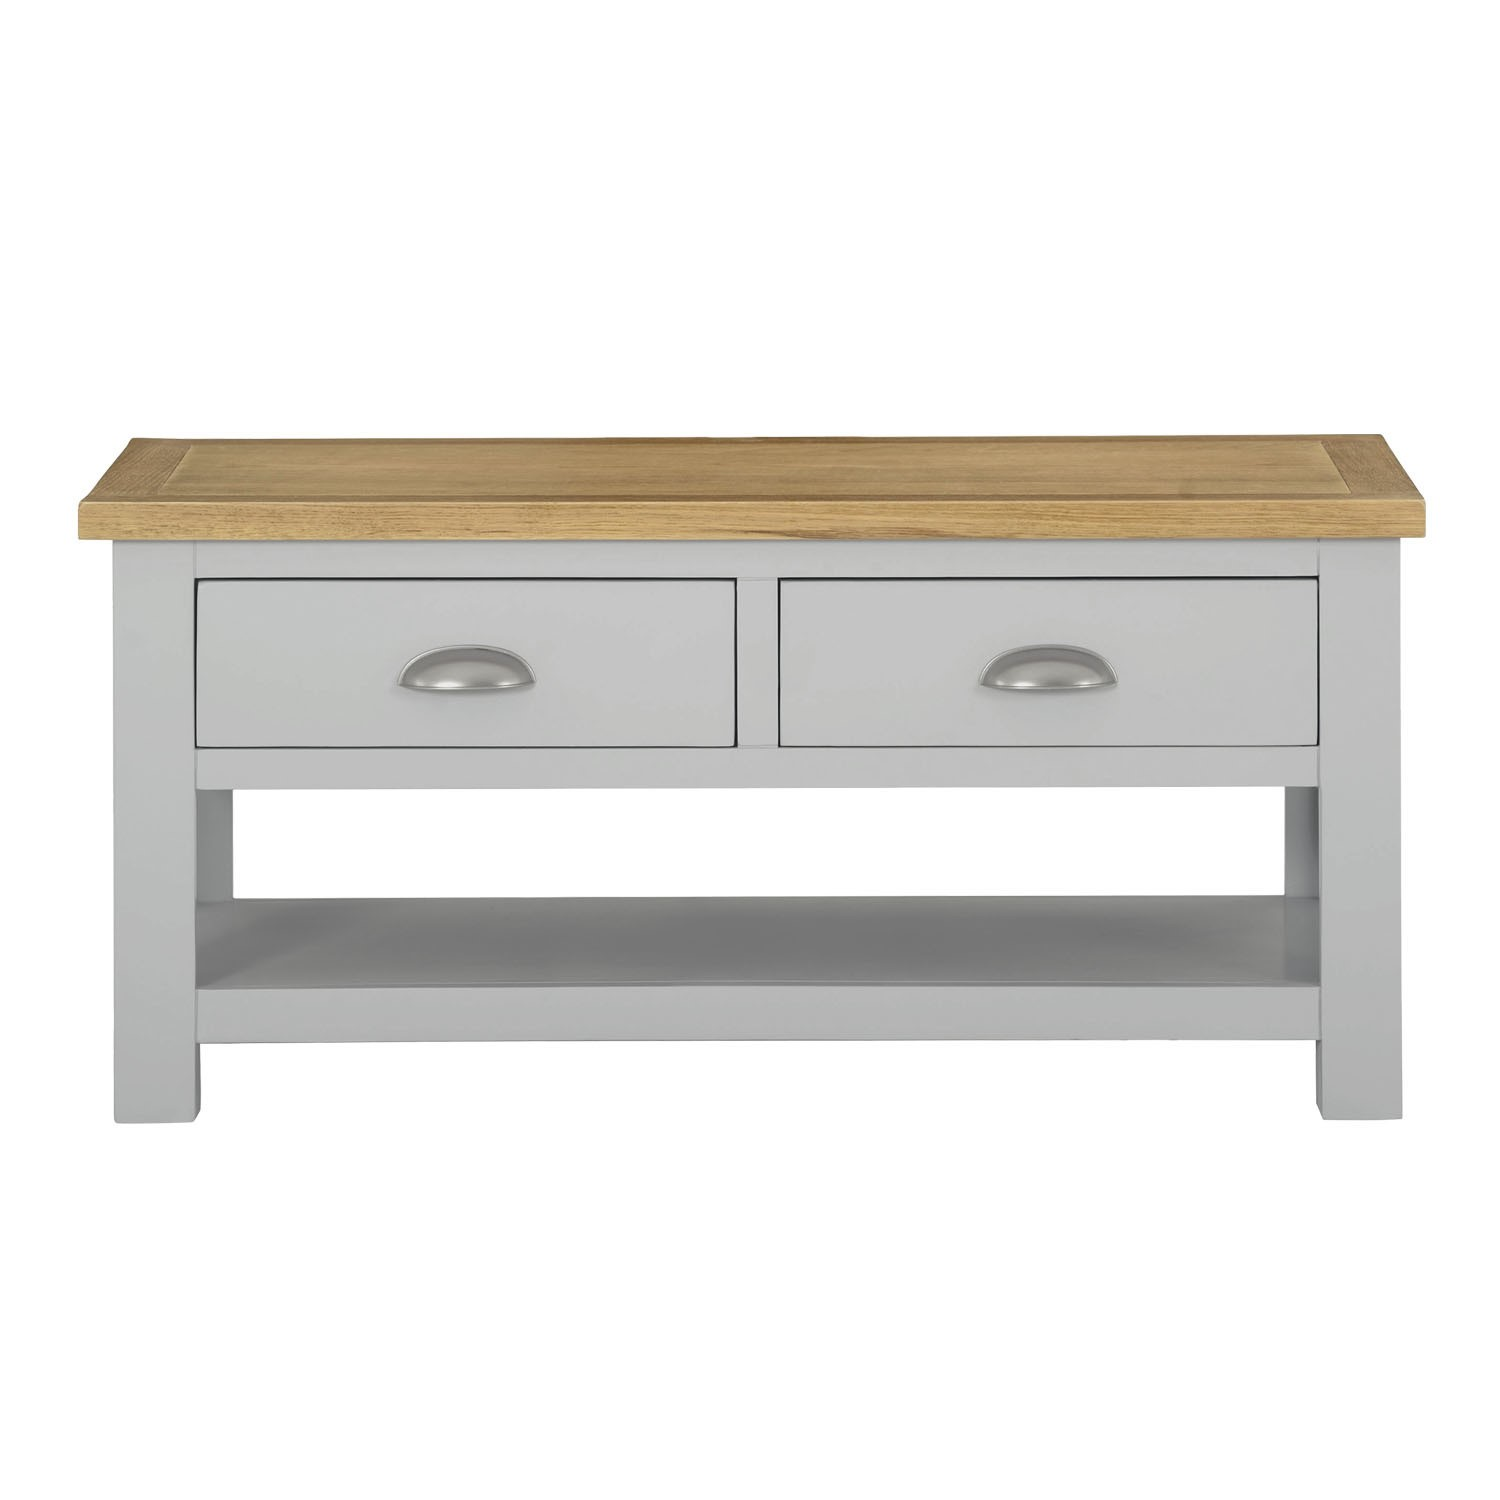 Living Room Coffee Table in Grey with Oak Top  Linden